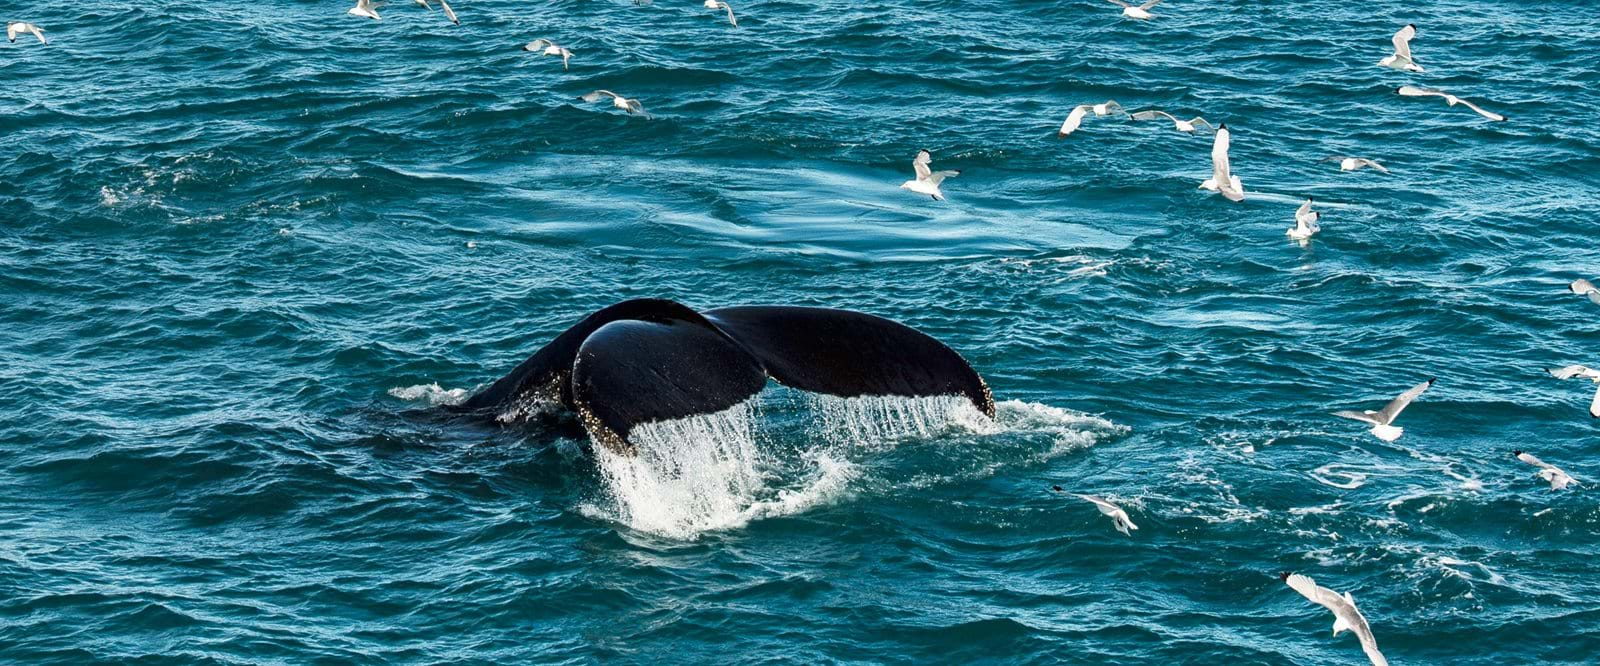 whale, Svalbard, Arctic cruise, expedition cruise